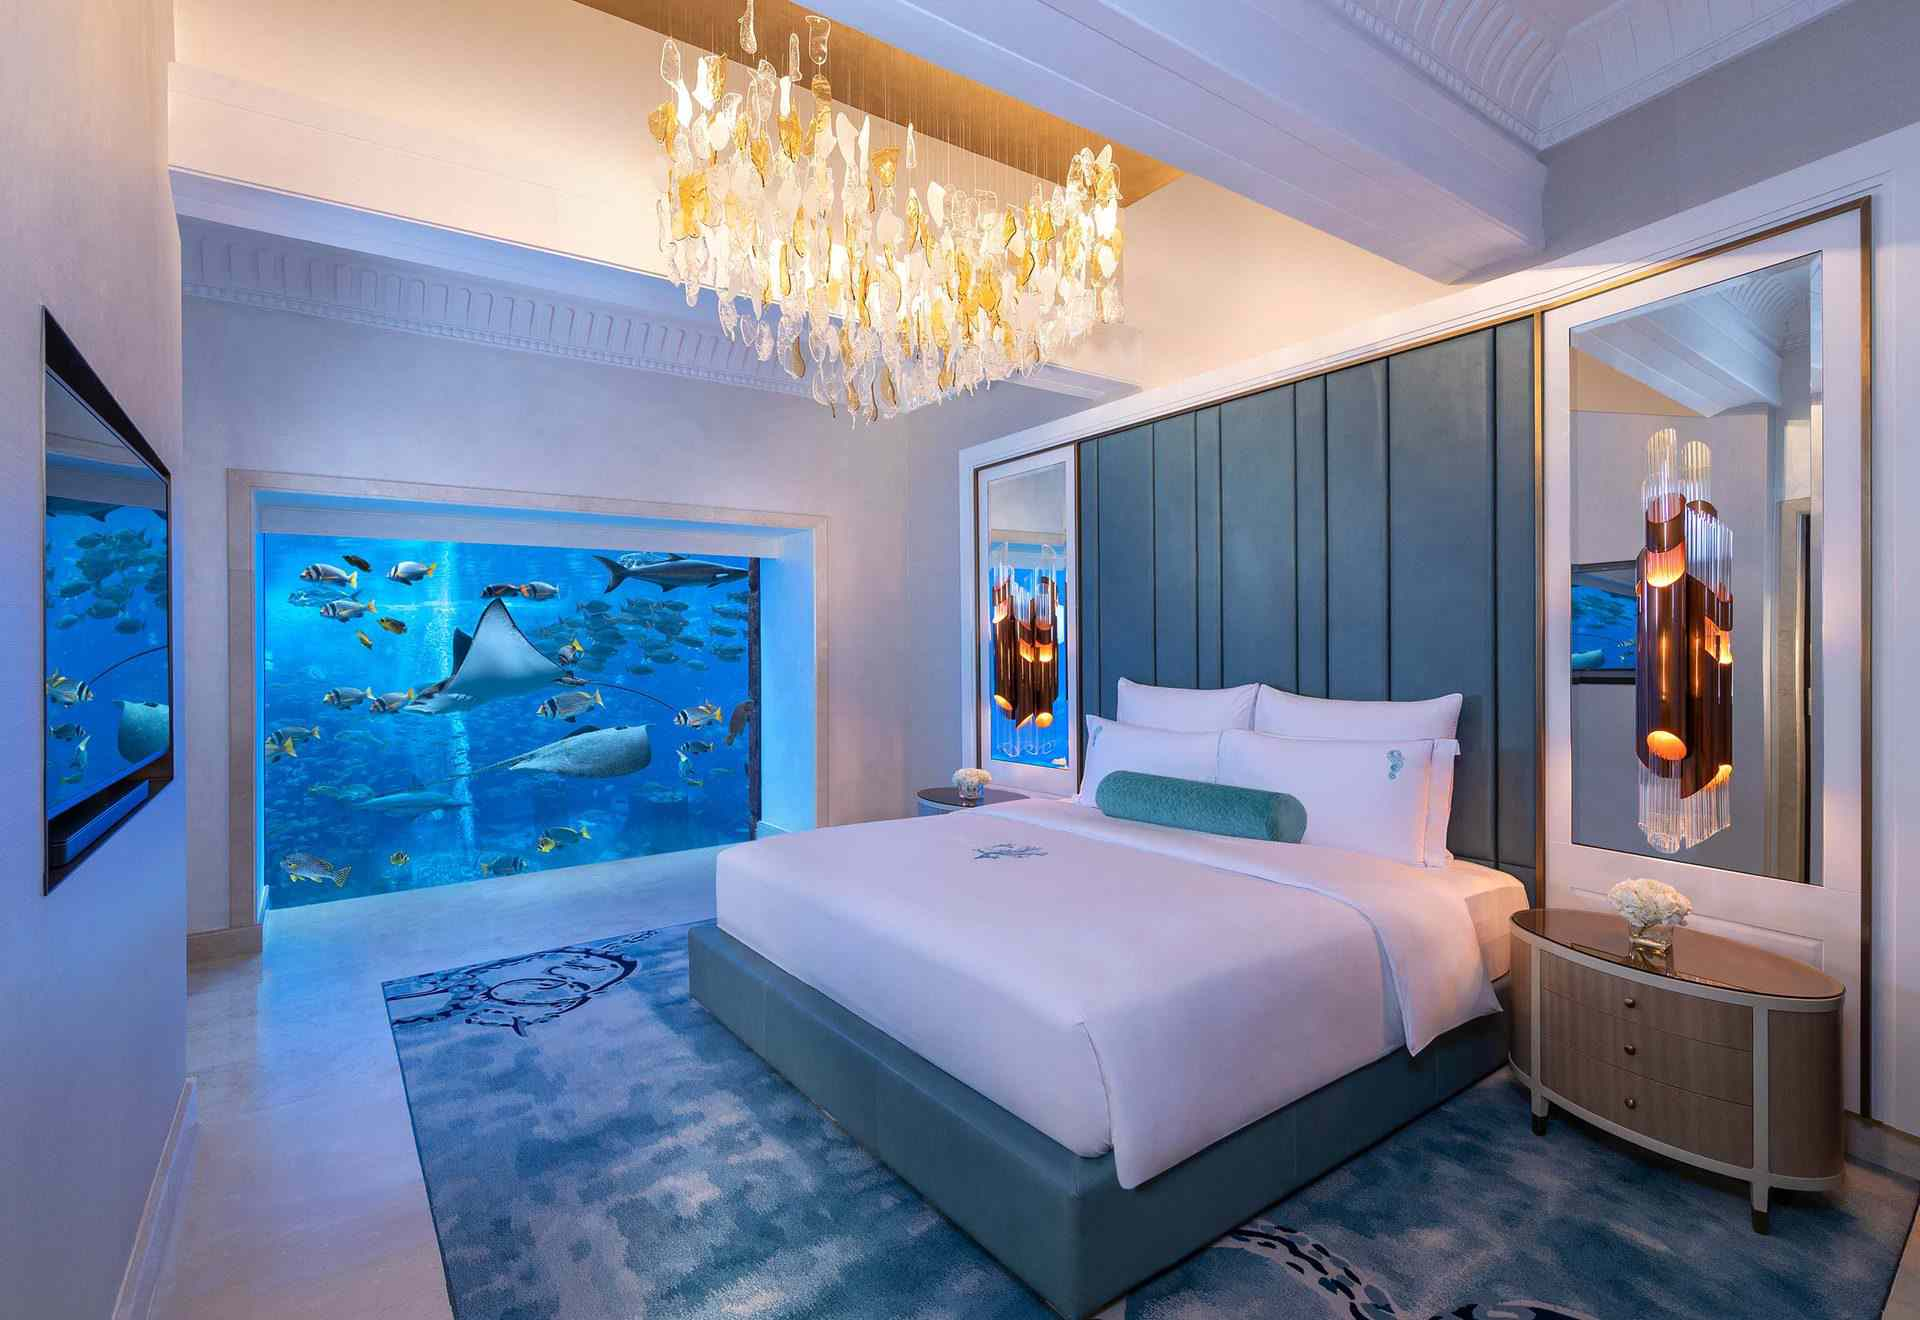 queen size bed in a hotel room with a blue and white theme. on the back wall there is a glass picture window showing sea life swimming by.